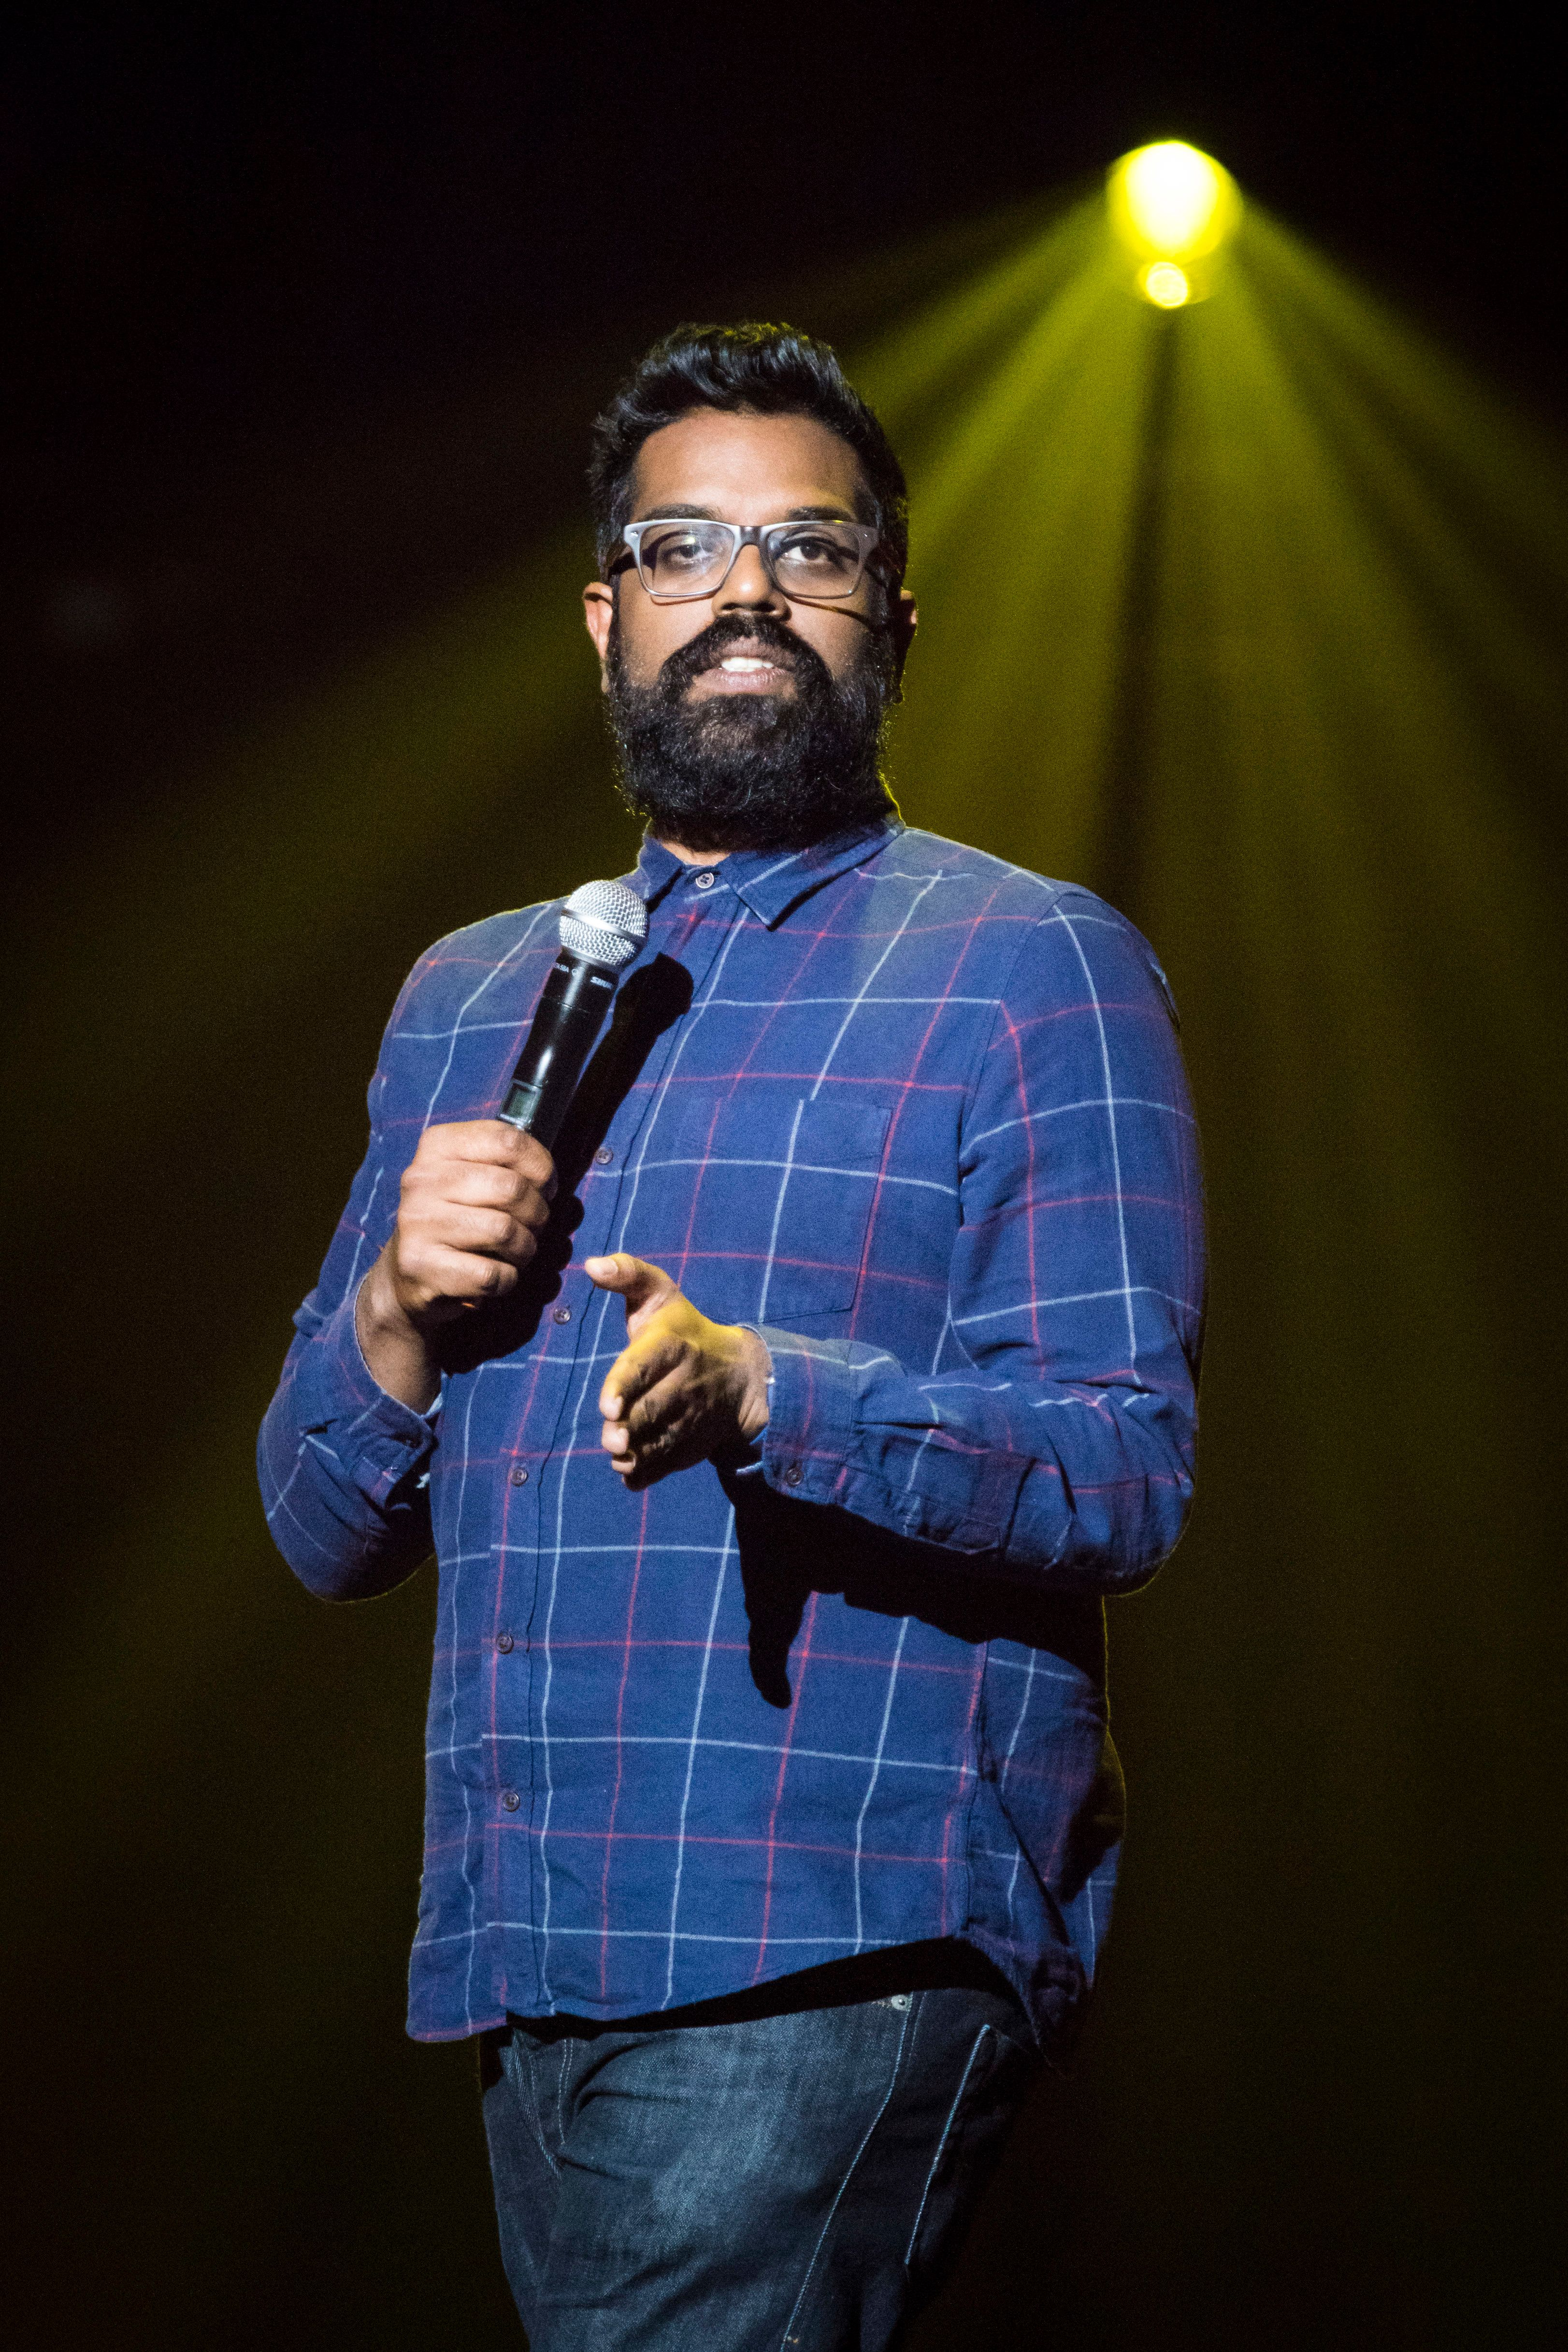 Romesh Ranganathan aspires to the honesty of Richard Pryor and Louis